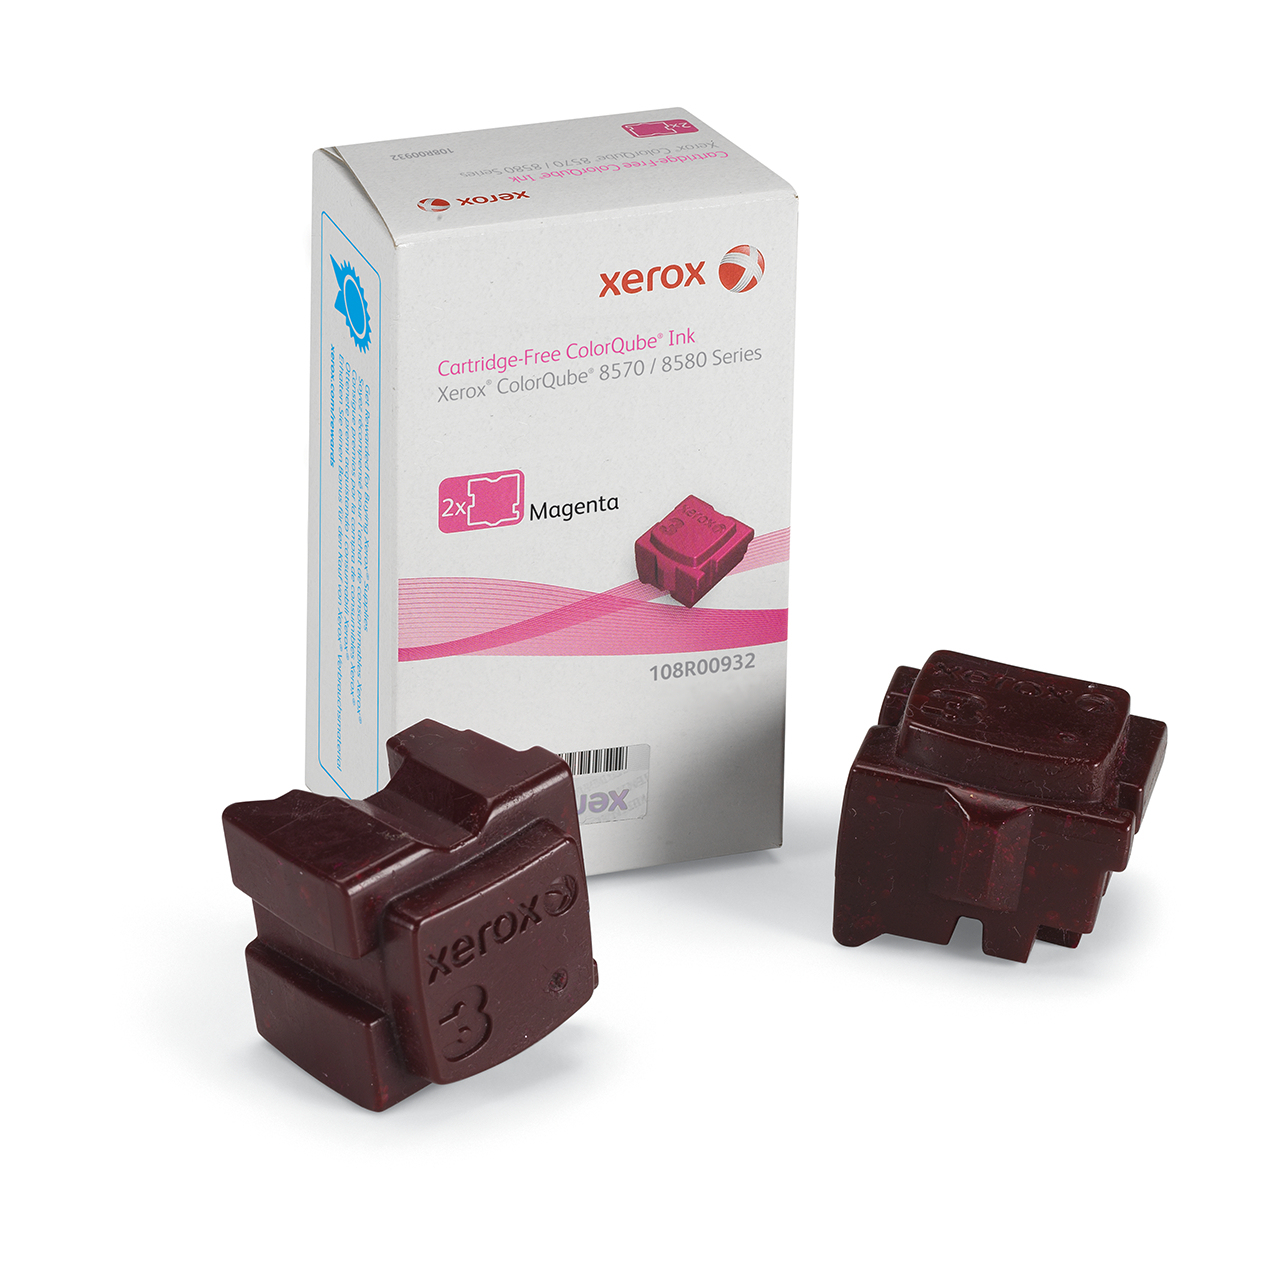 108r00932 Xerox Solid Ink Magenta (2 Sticks)        F/ 8570